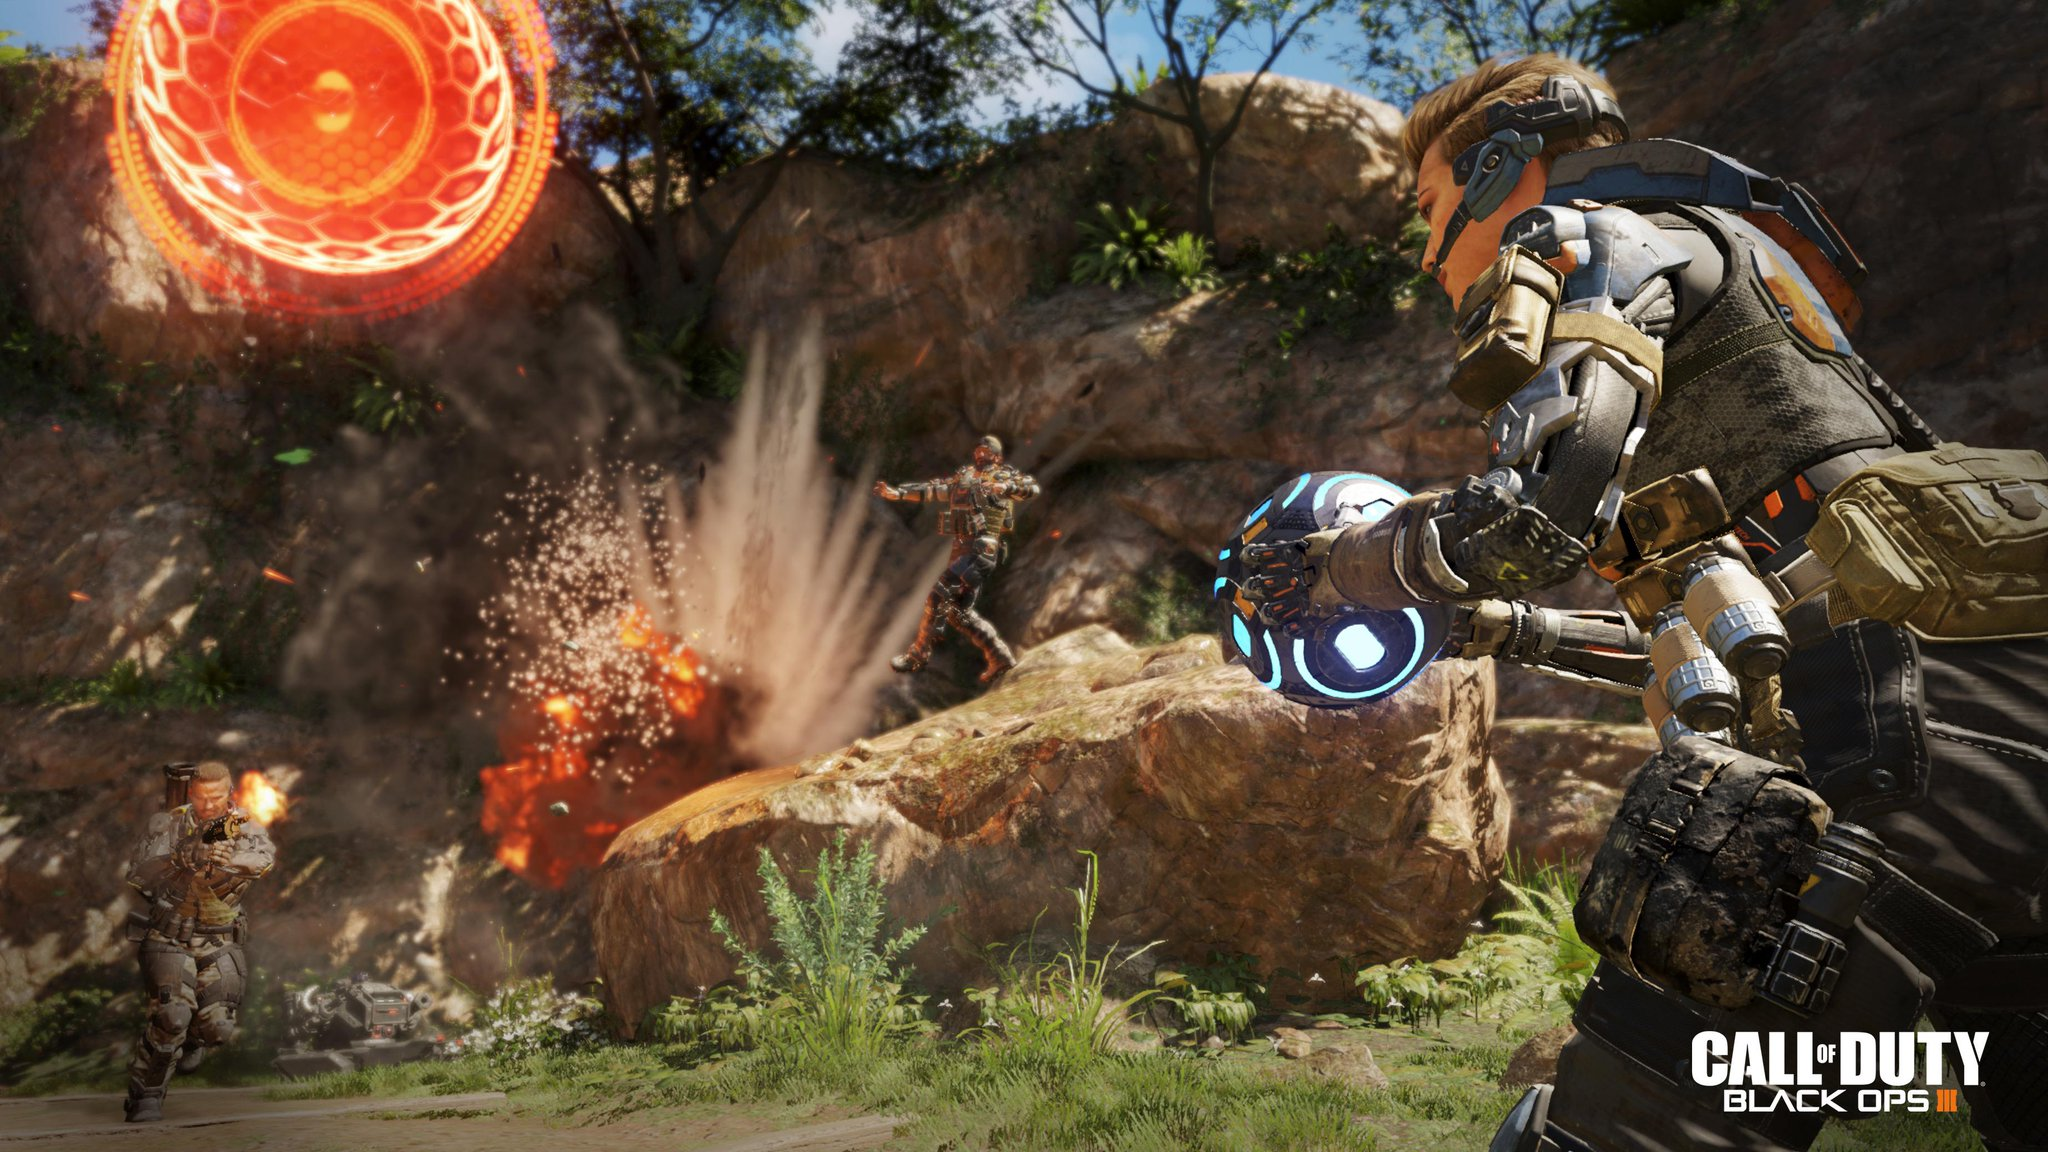 Black Ops 3 has no campaign on last generation consoles